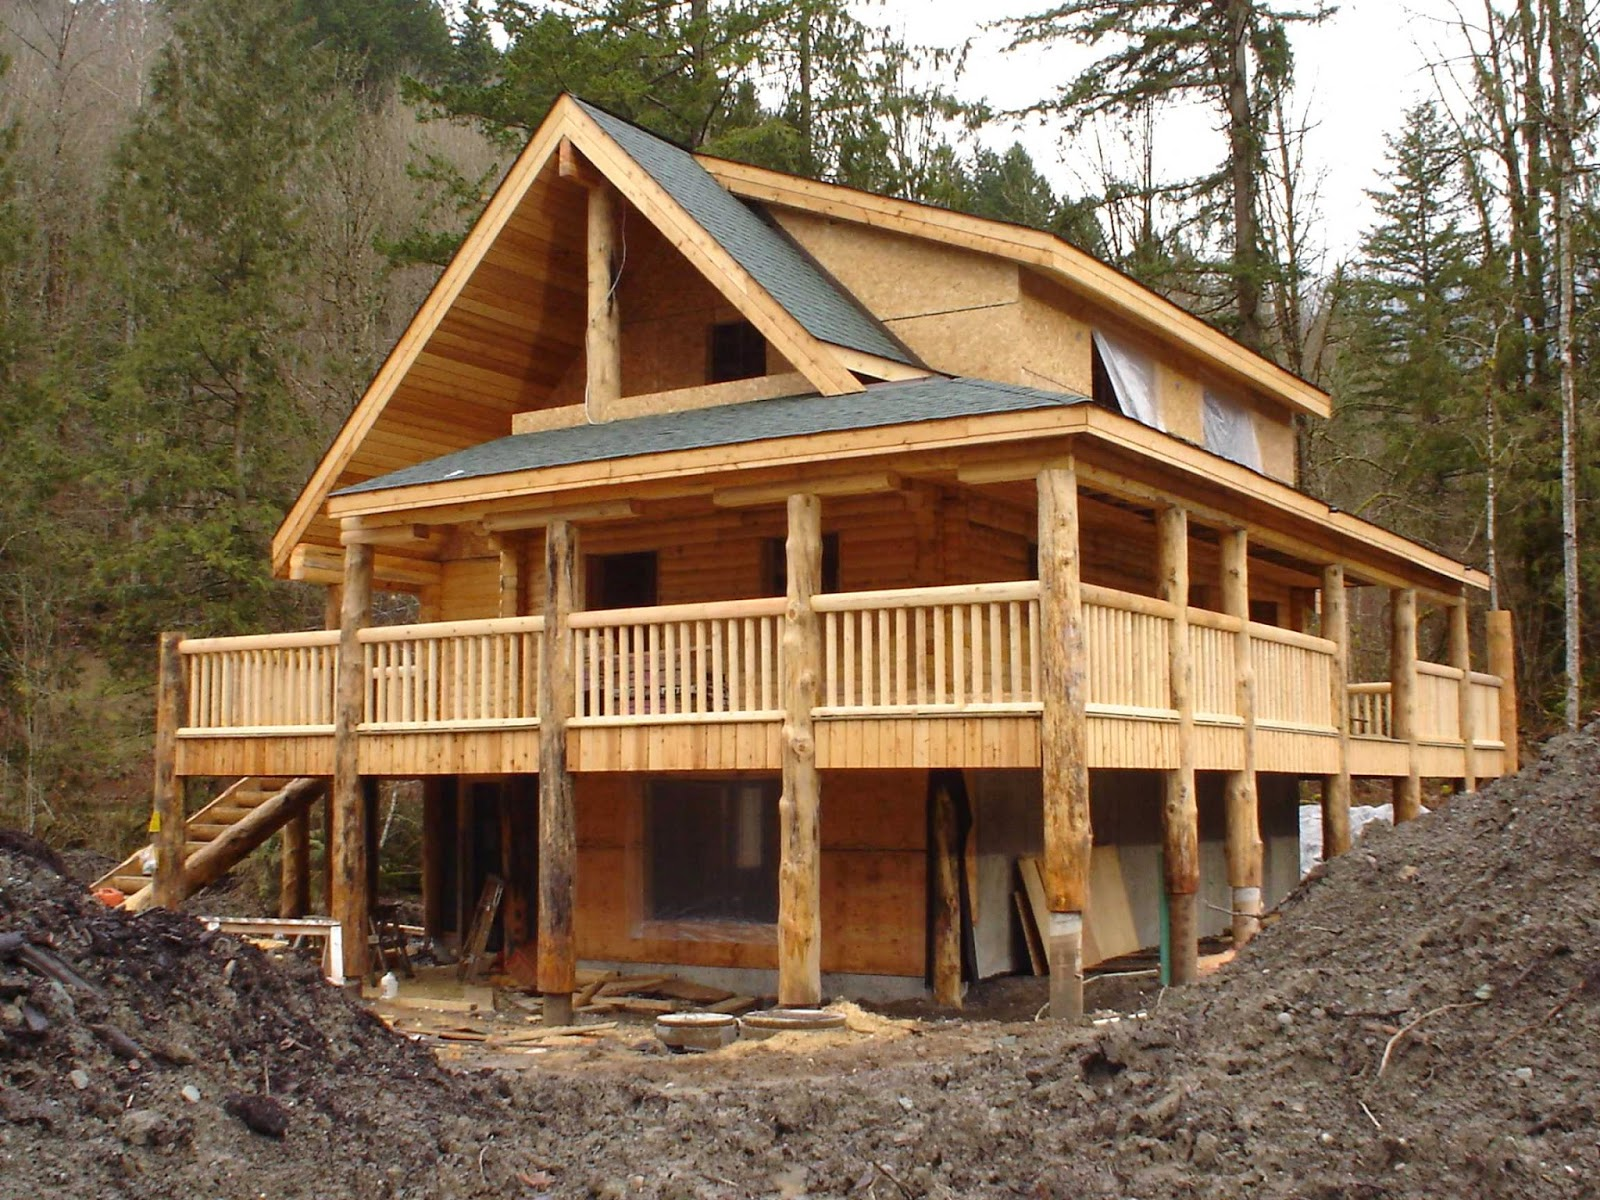 Wood mizer llc building a successful business with a for Mill log